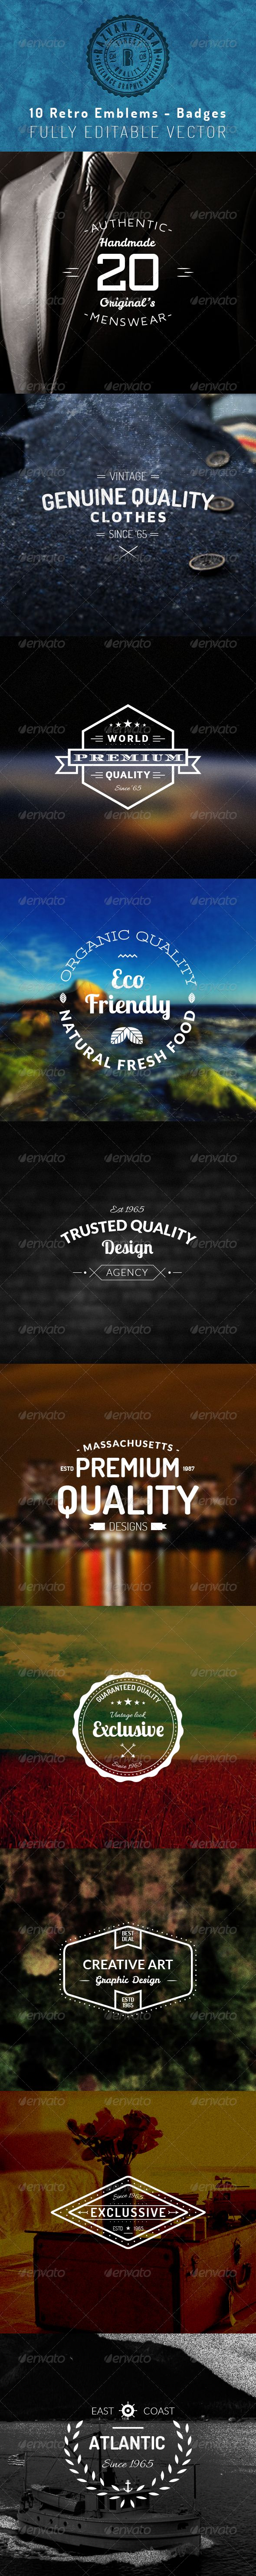 Premium quality set of Retro Emblems-Insignias that can be used as logos, stamps, posters, banners etc. These Emblems-Insignias are 100% vector and therefore 100% editable and scalable without losing detail. All fonts are free for personal and commercial use. Fonts name and links given in the info file. Background images are not included in this package.